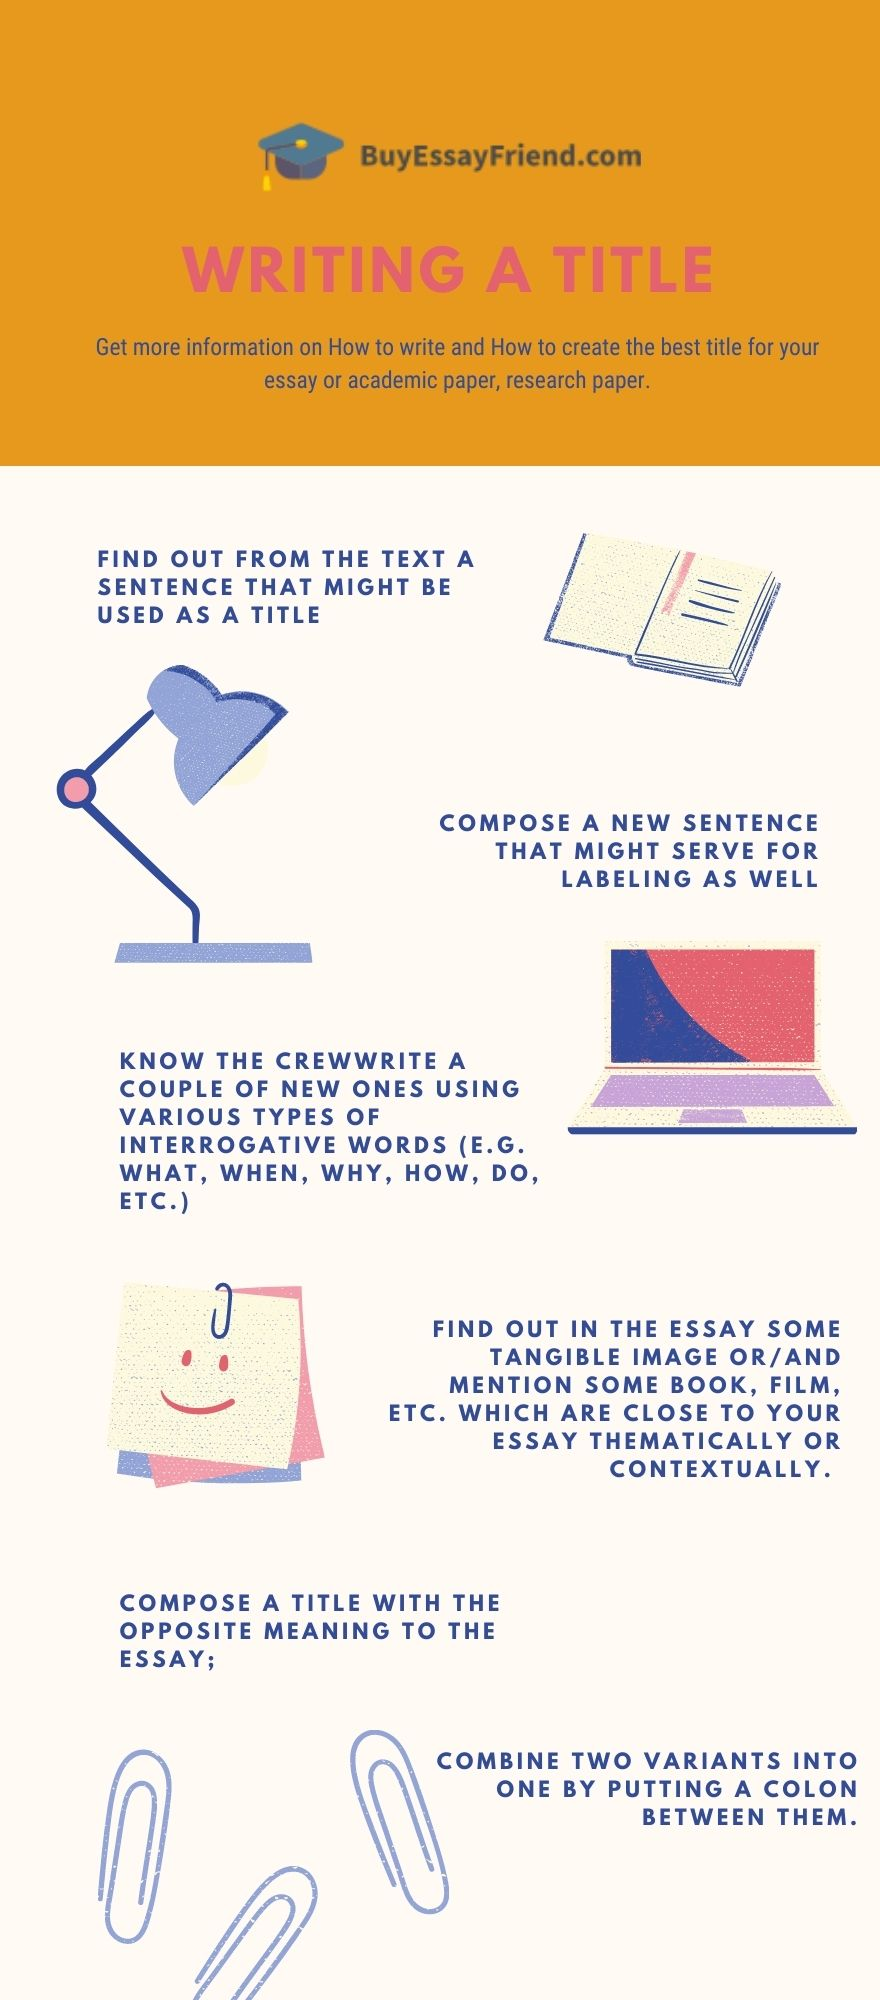 An infographic on How to write a better Title for an essay.